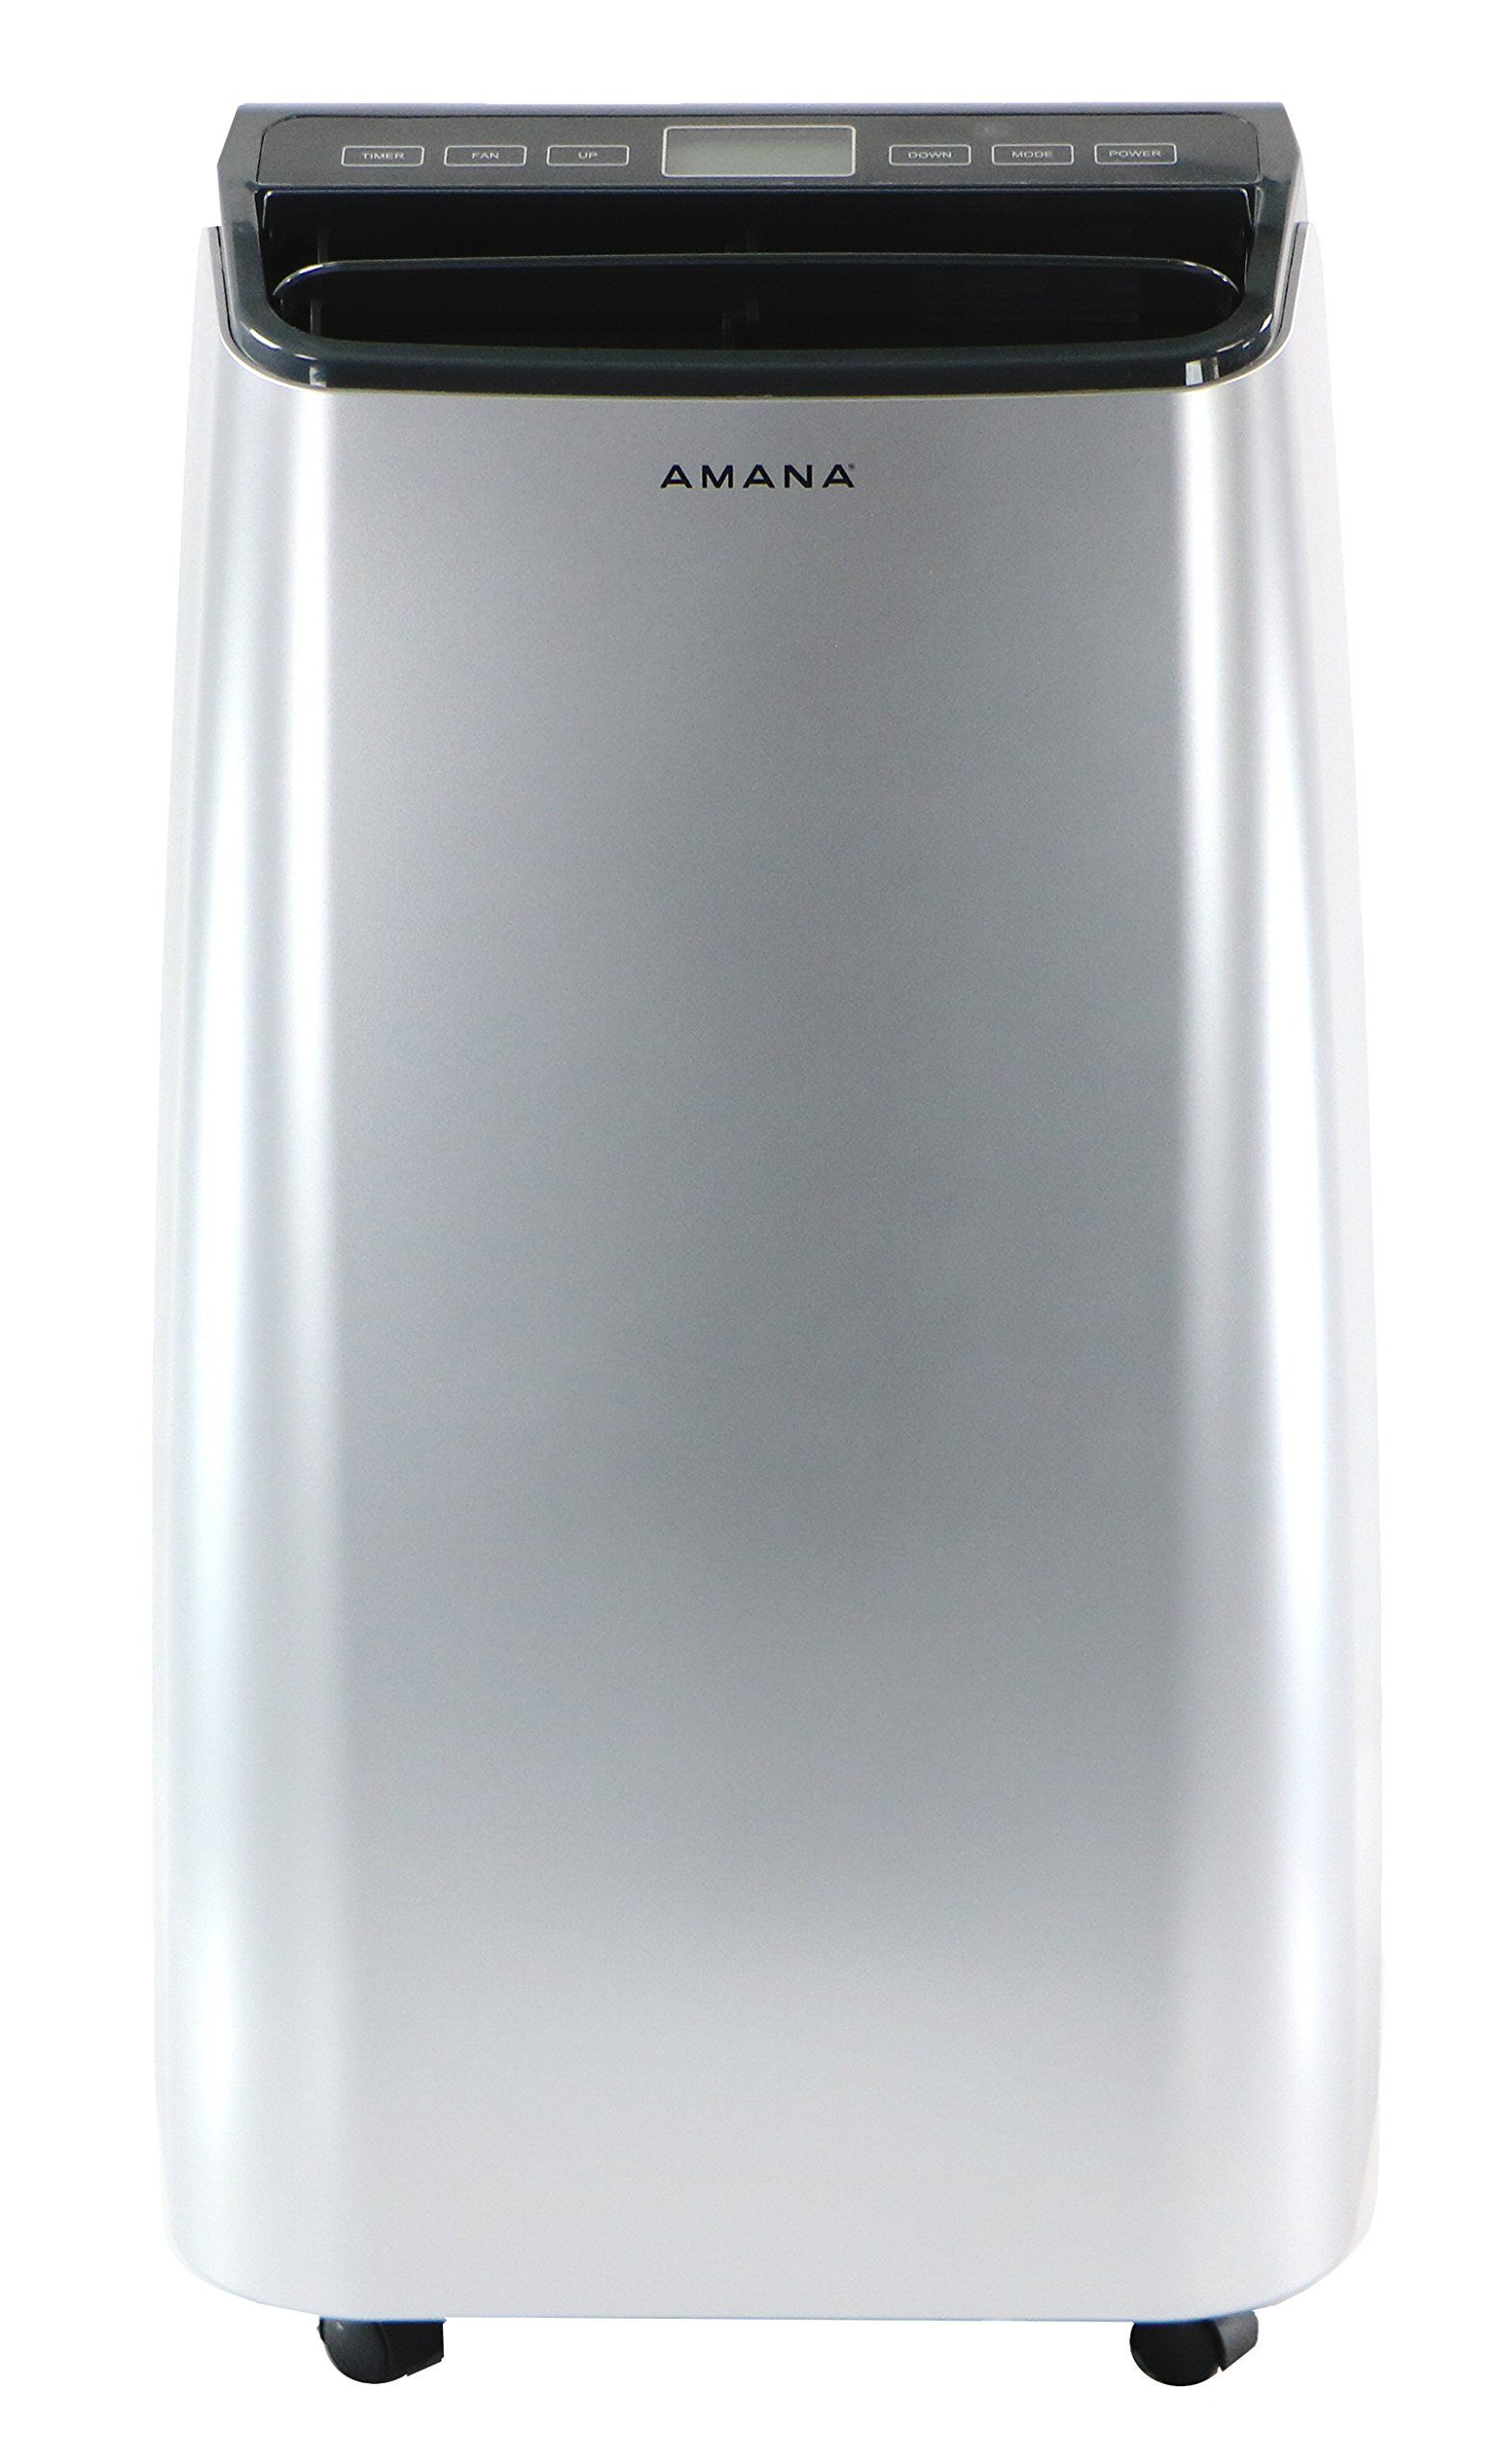 Buy honeywell portable air conditioners with the help of